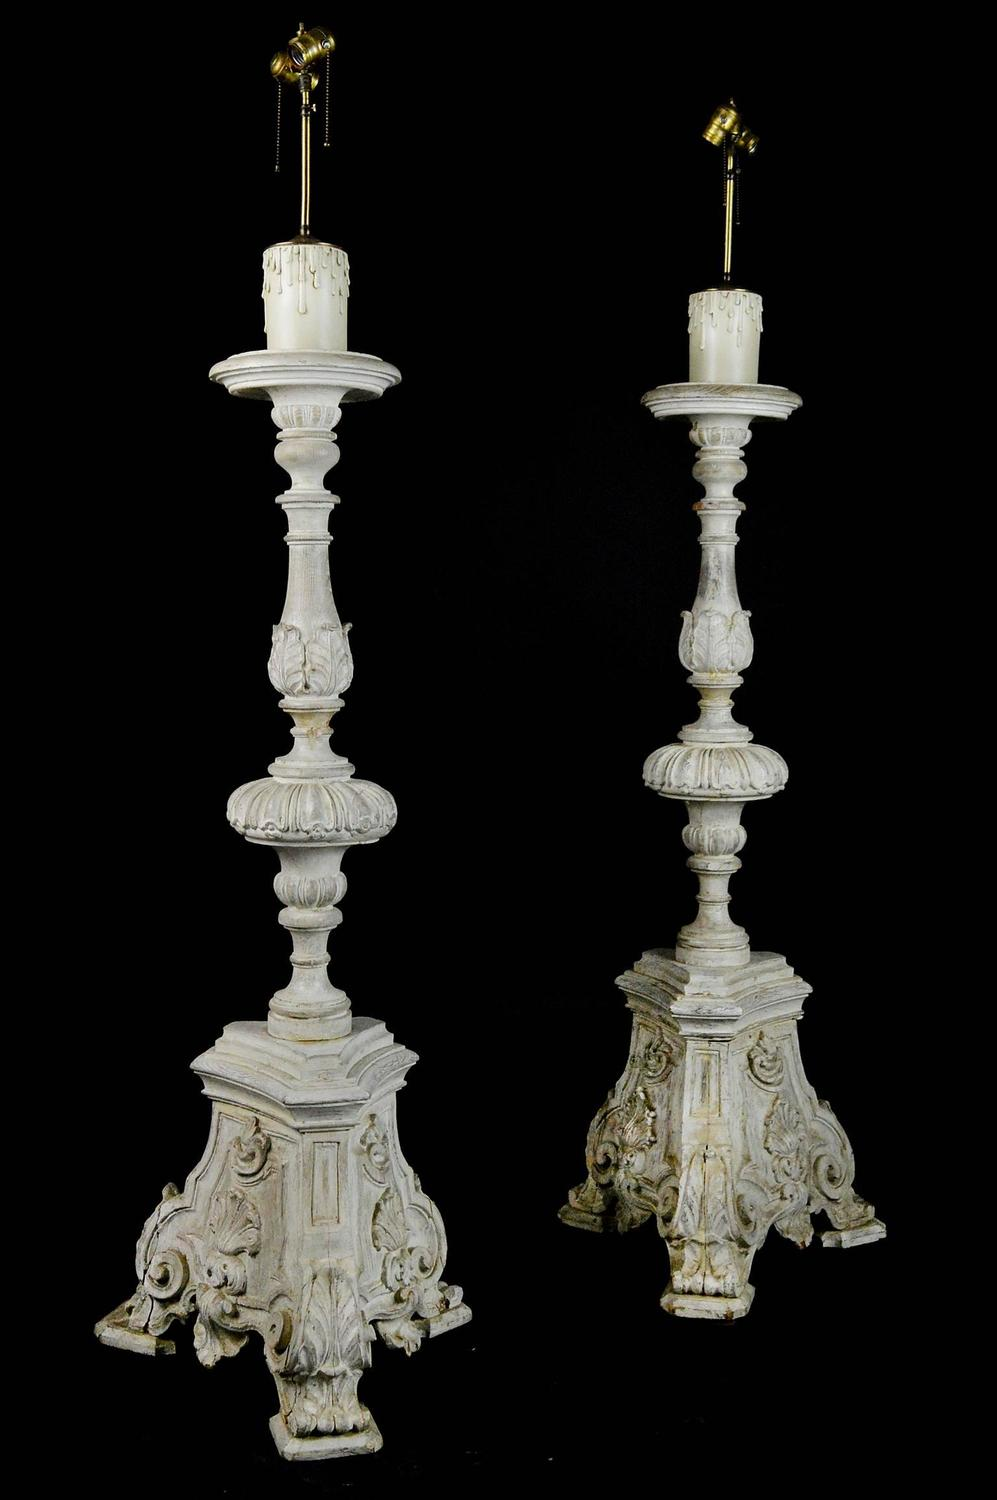 Pair of Carved Wood Neoclassical Style Floor Lamps at 1stdibs